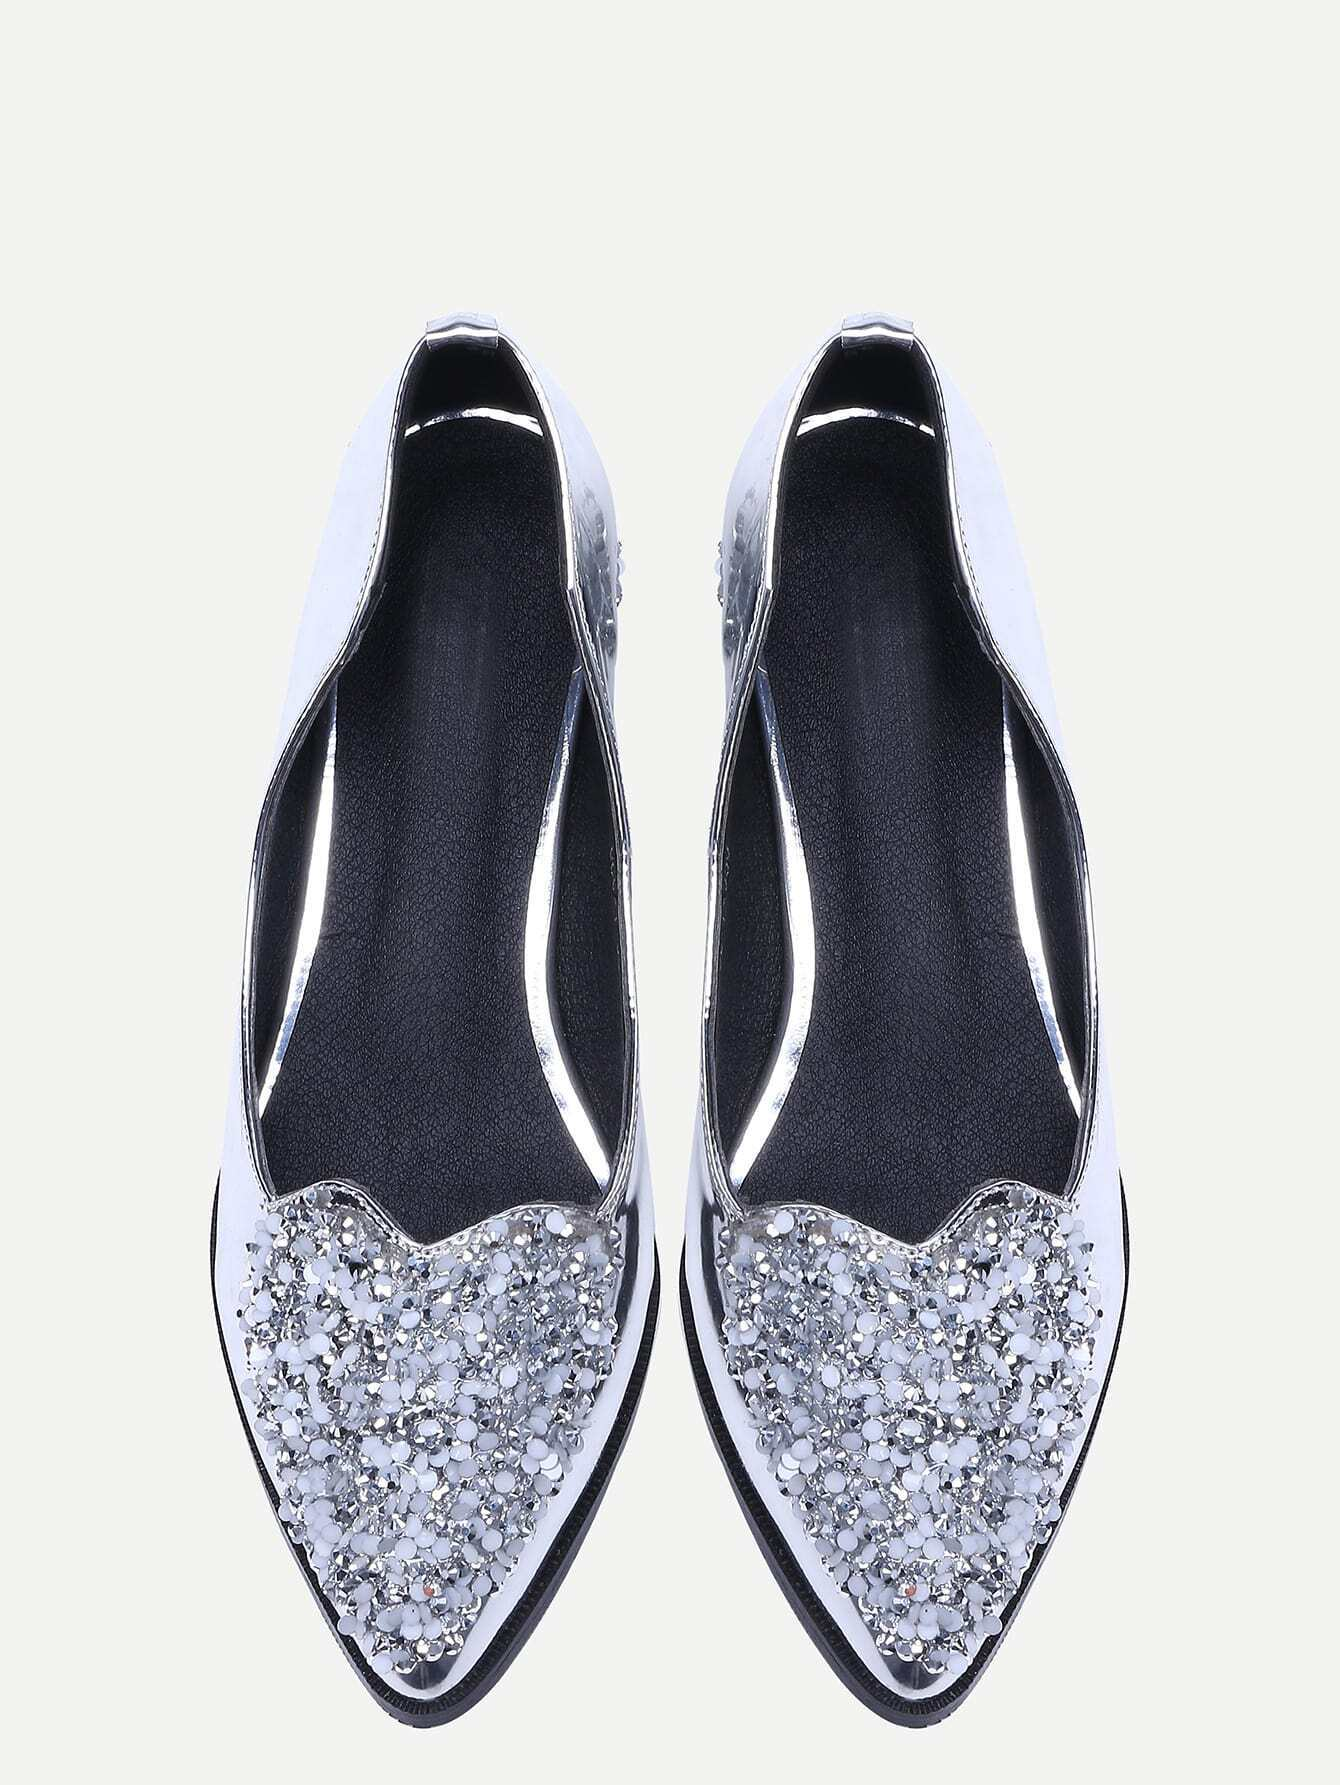 silver patent leather sequins shoes shein sheinside